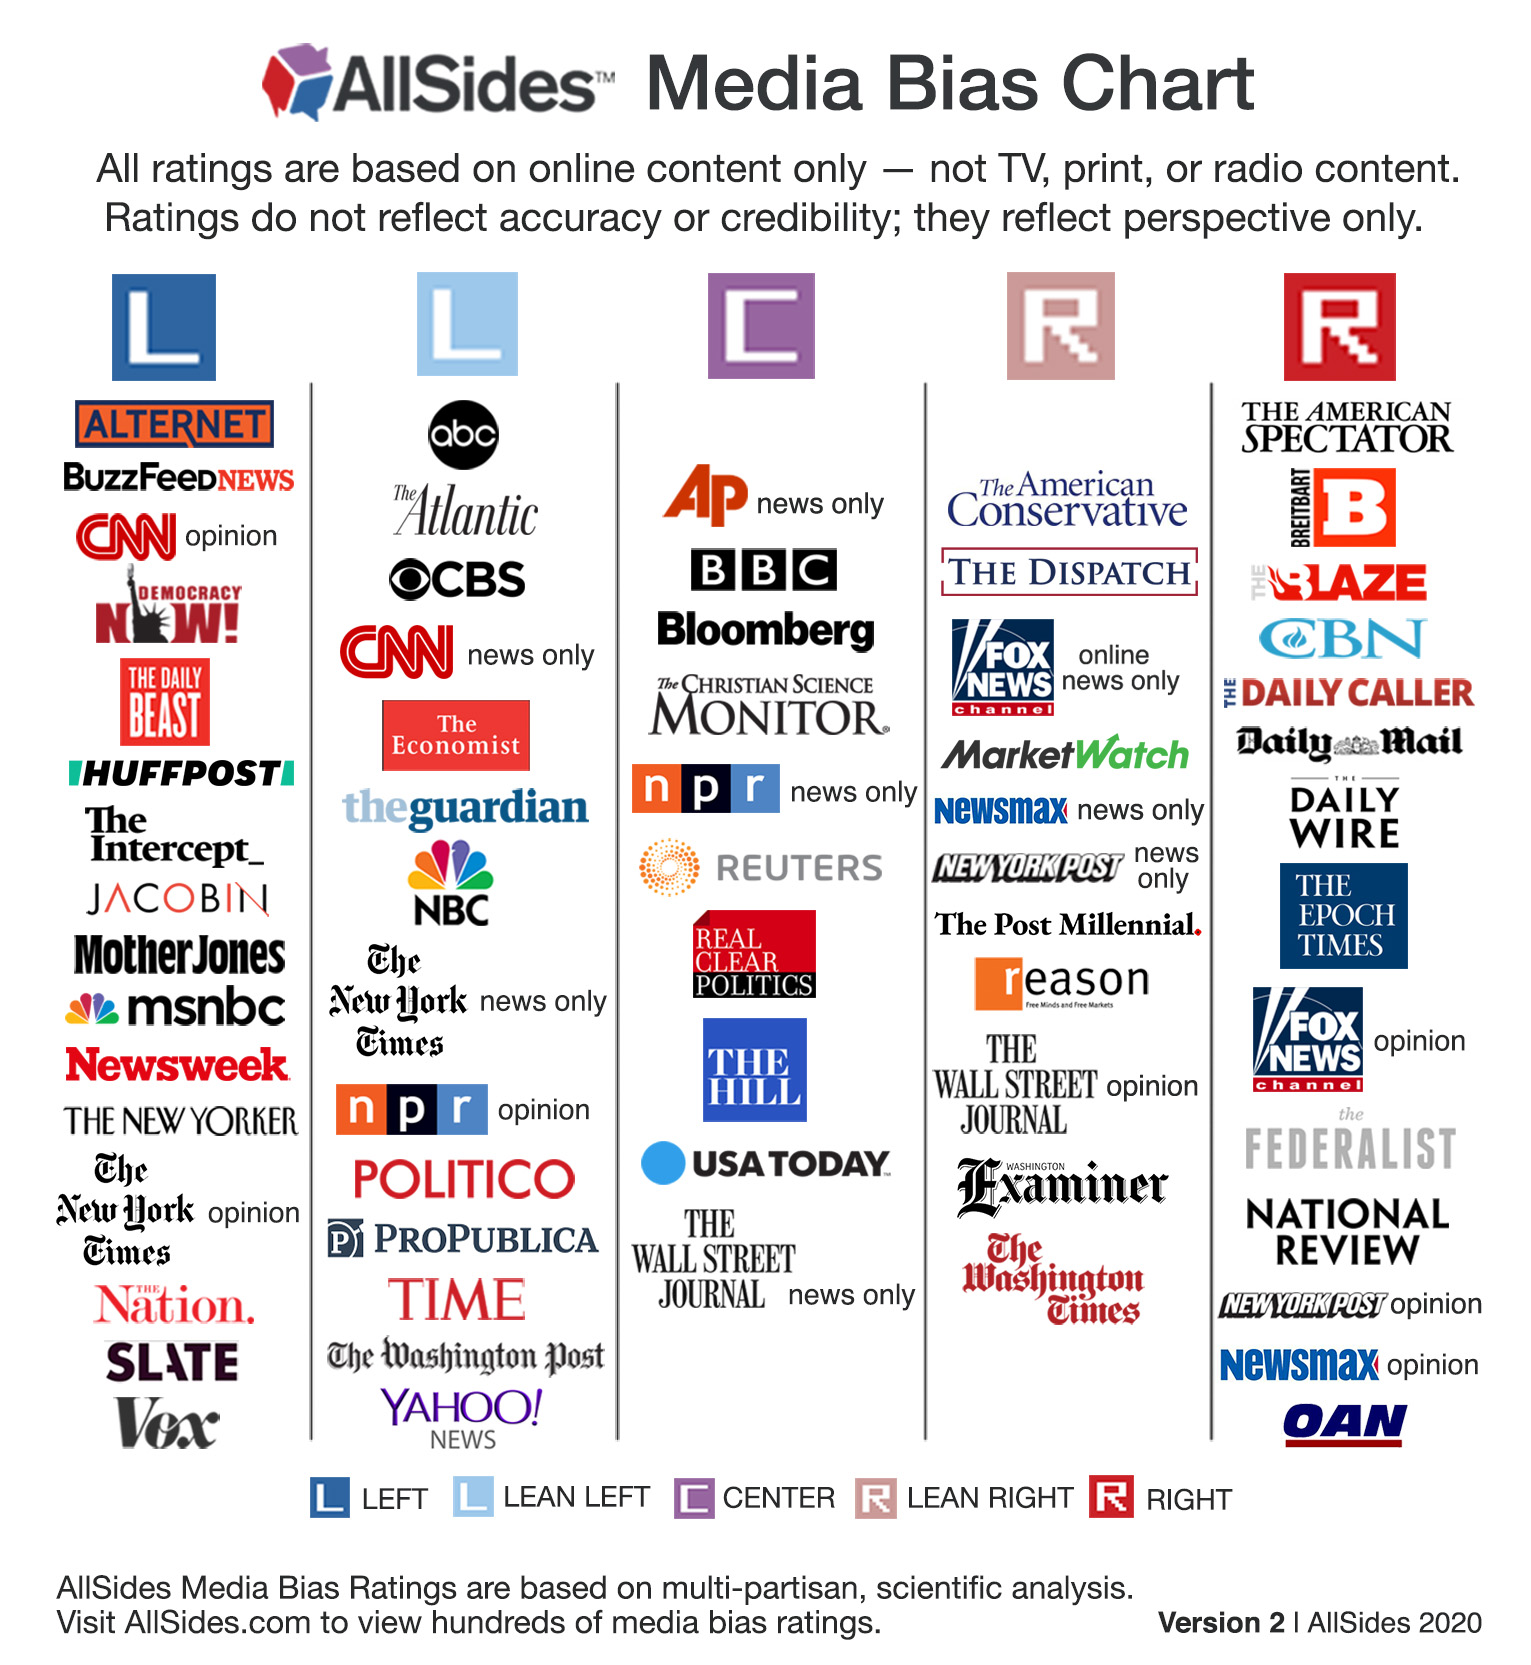 List of media outlets and their political leanings